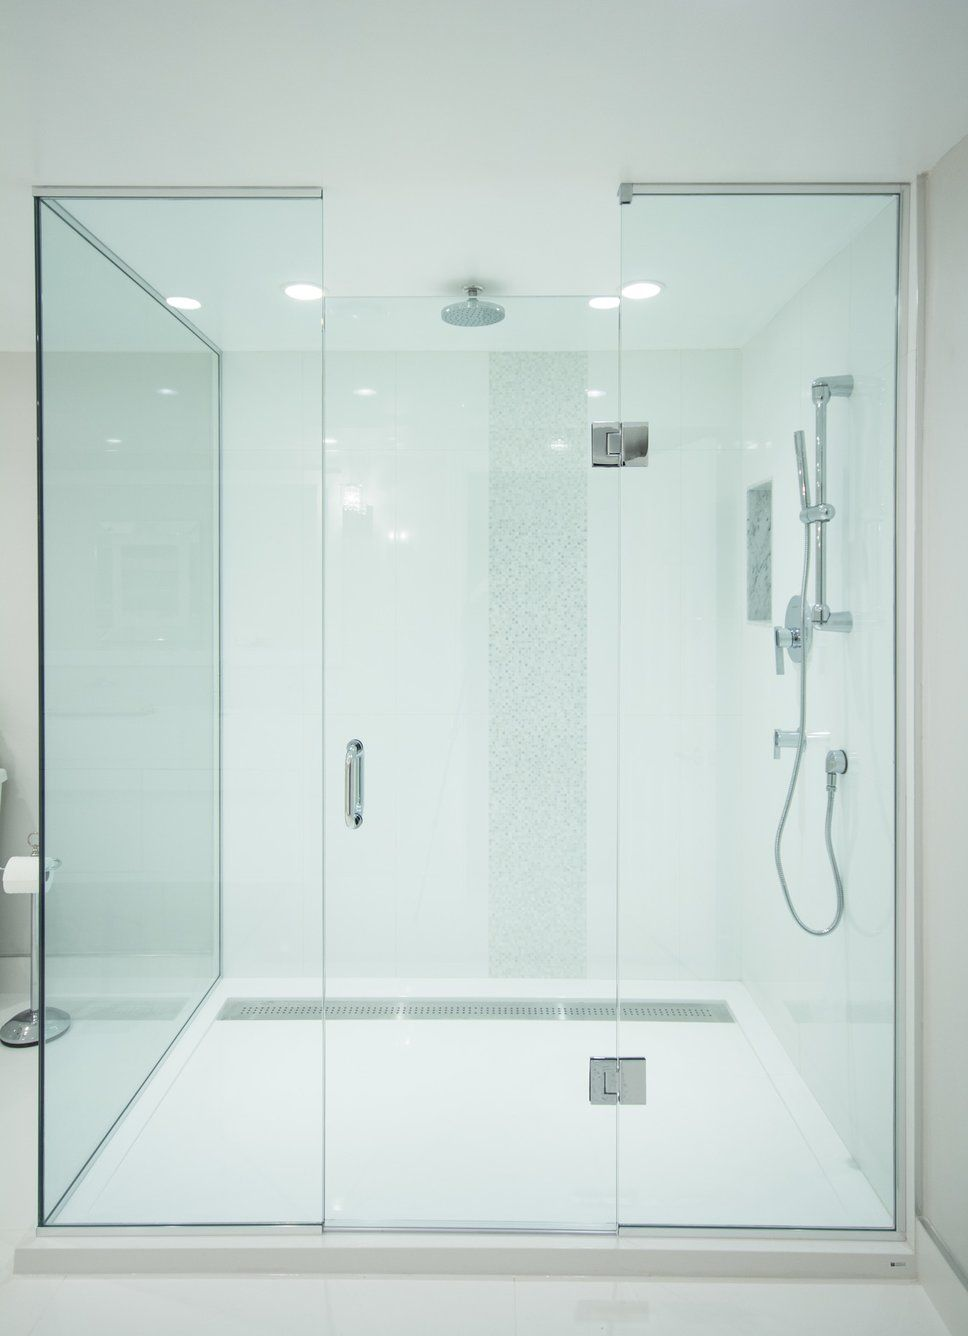 Custom glass 6 x 4 walk in shower with rain shower head and 1 piece ...